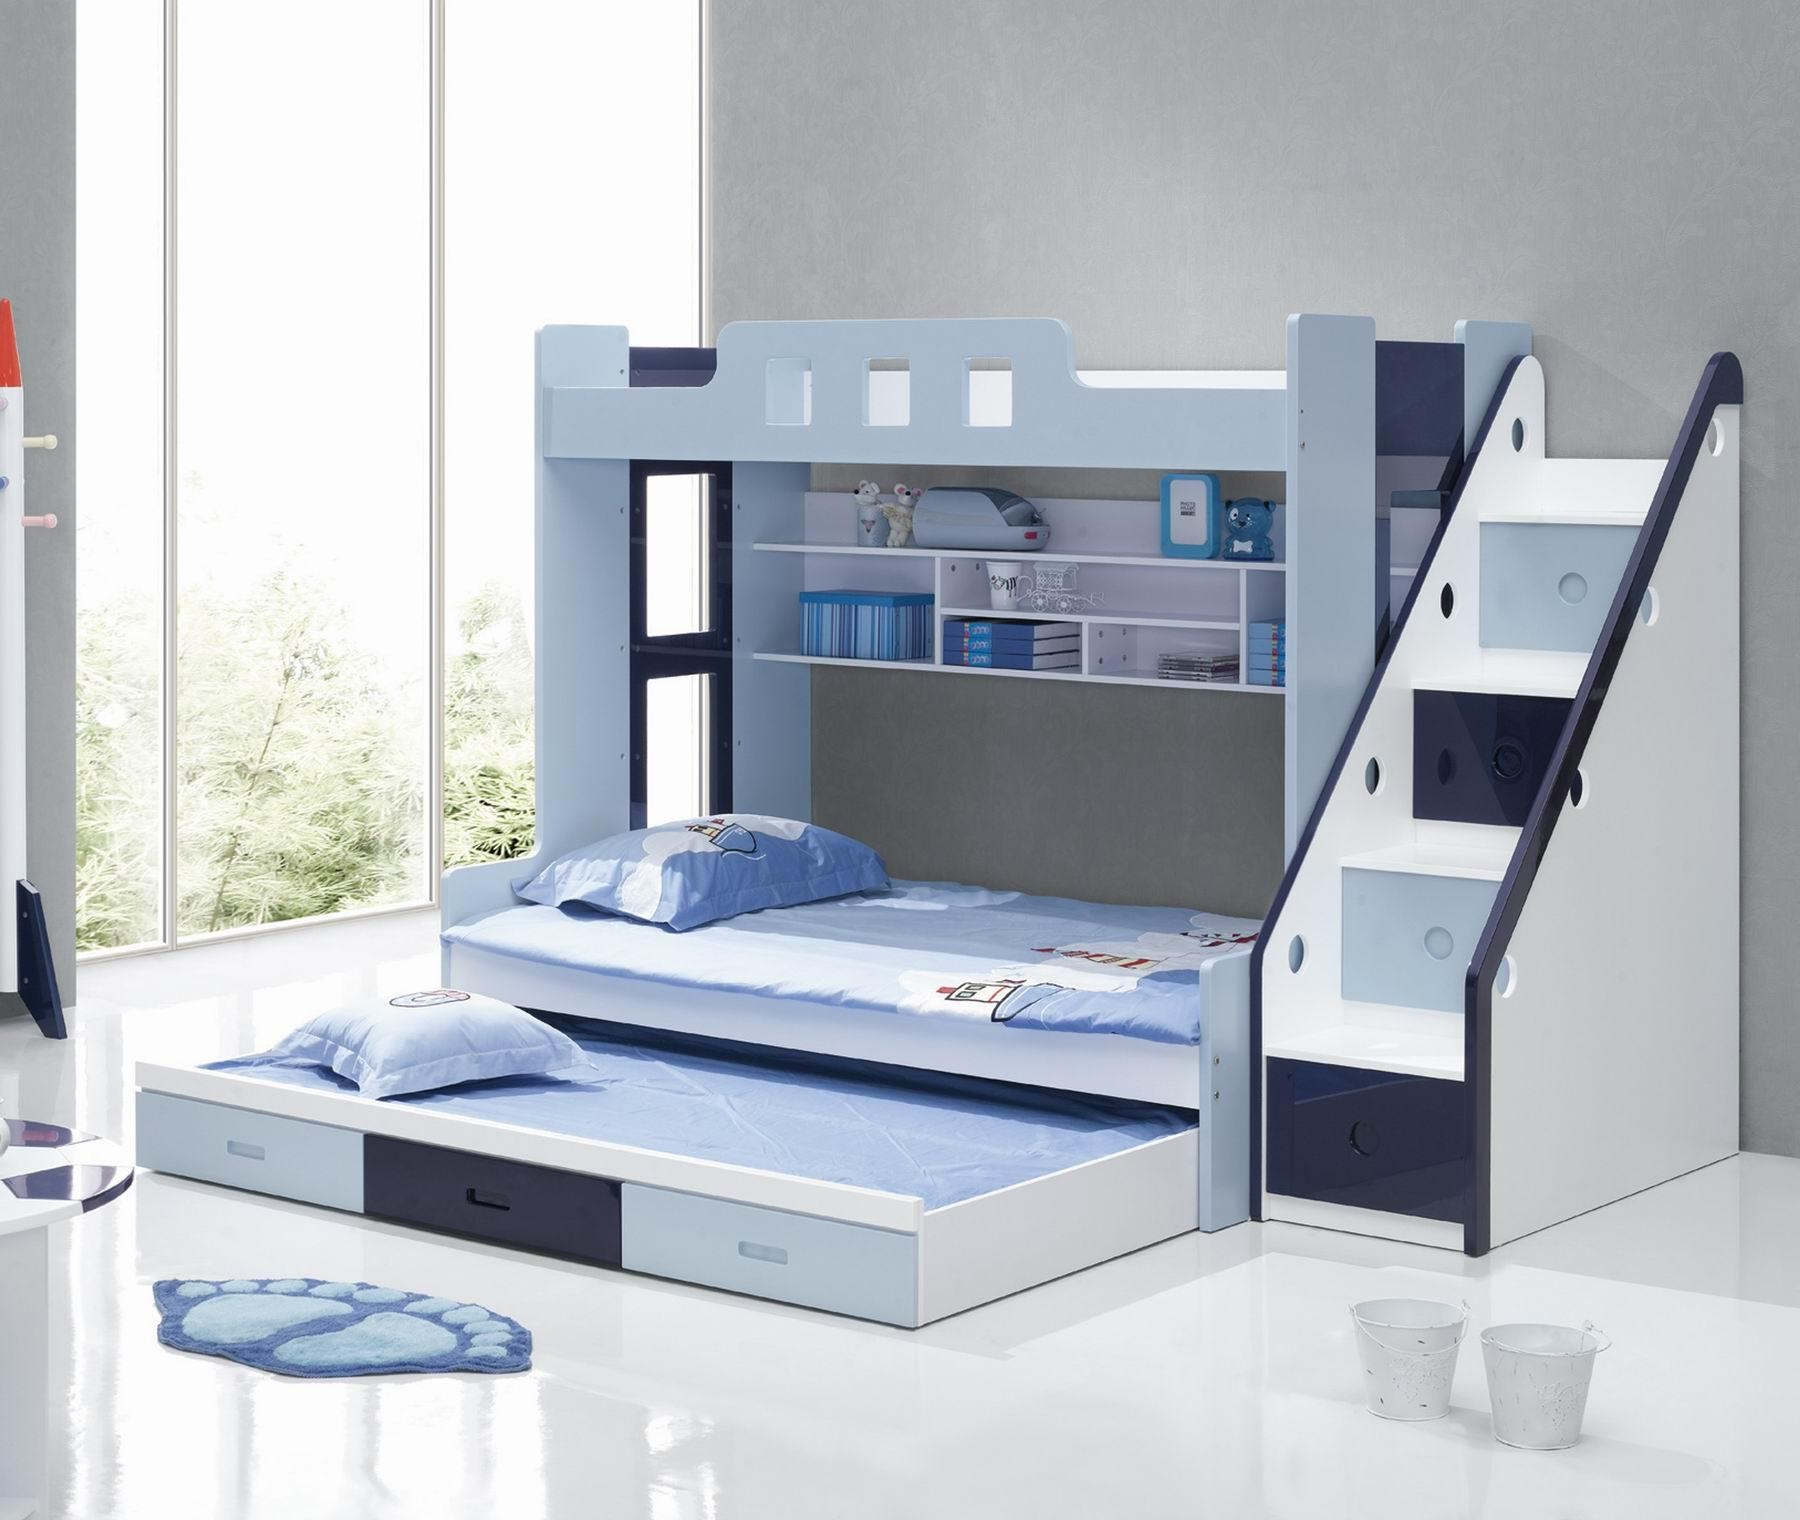 25 Diy Bunk Beds With Plans | Guide Patterns With Bunk Bed With Sofas Underneath (Image 1 of 20)